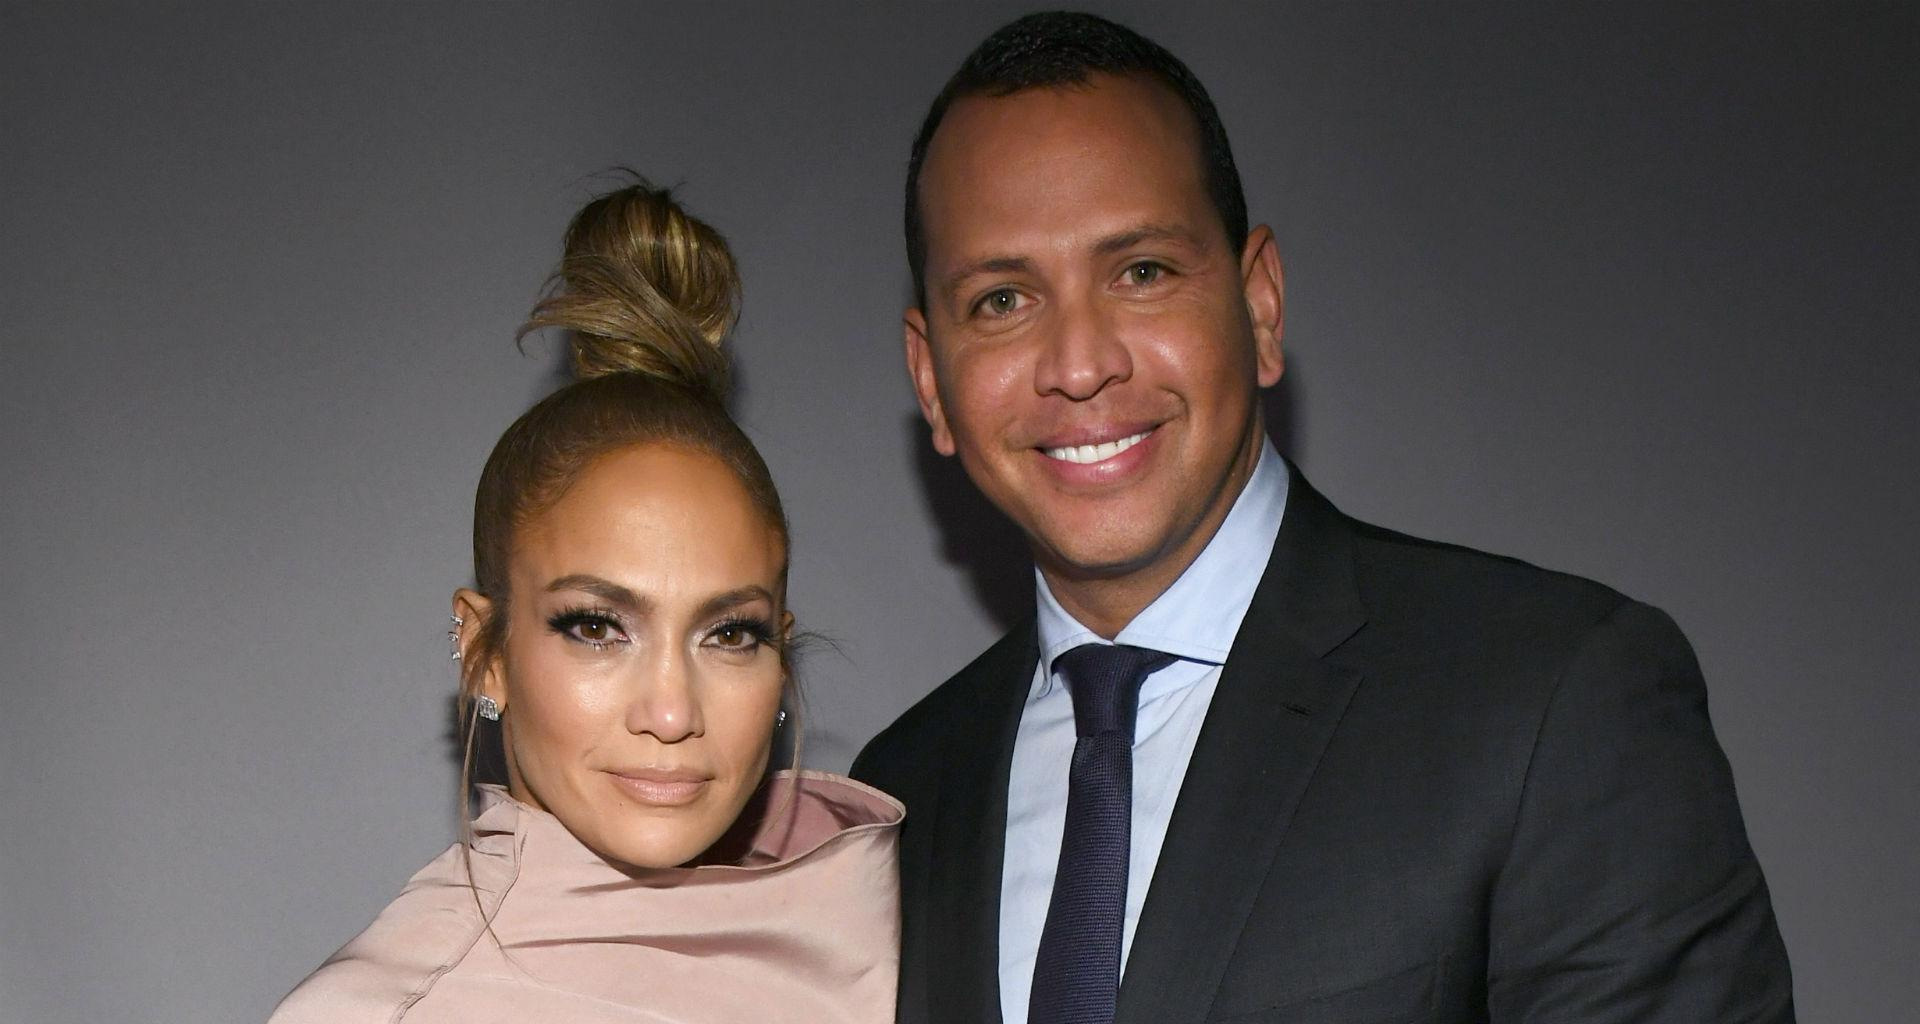 Alex Rodriguez And Jennifer Lopez Enjoy Romantic Outing At The Beach